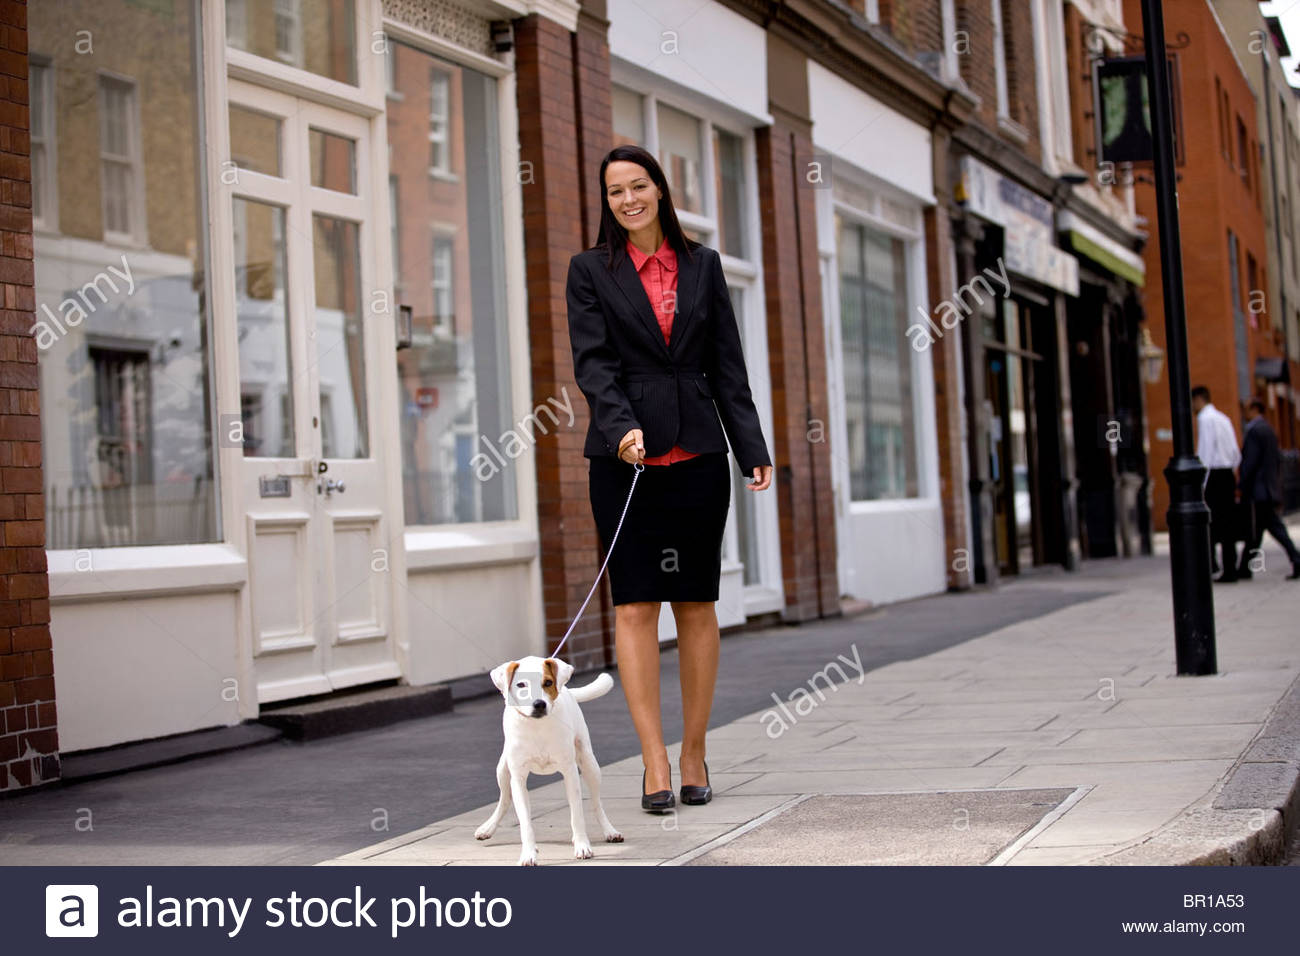 A businesswoman walking her dog in the street - Stock Image